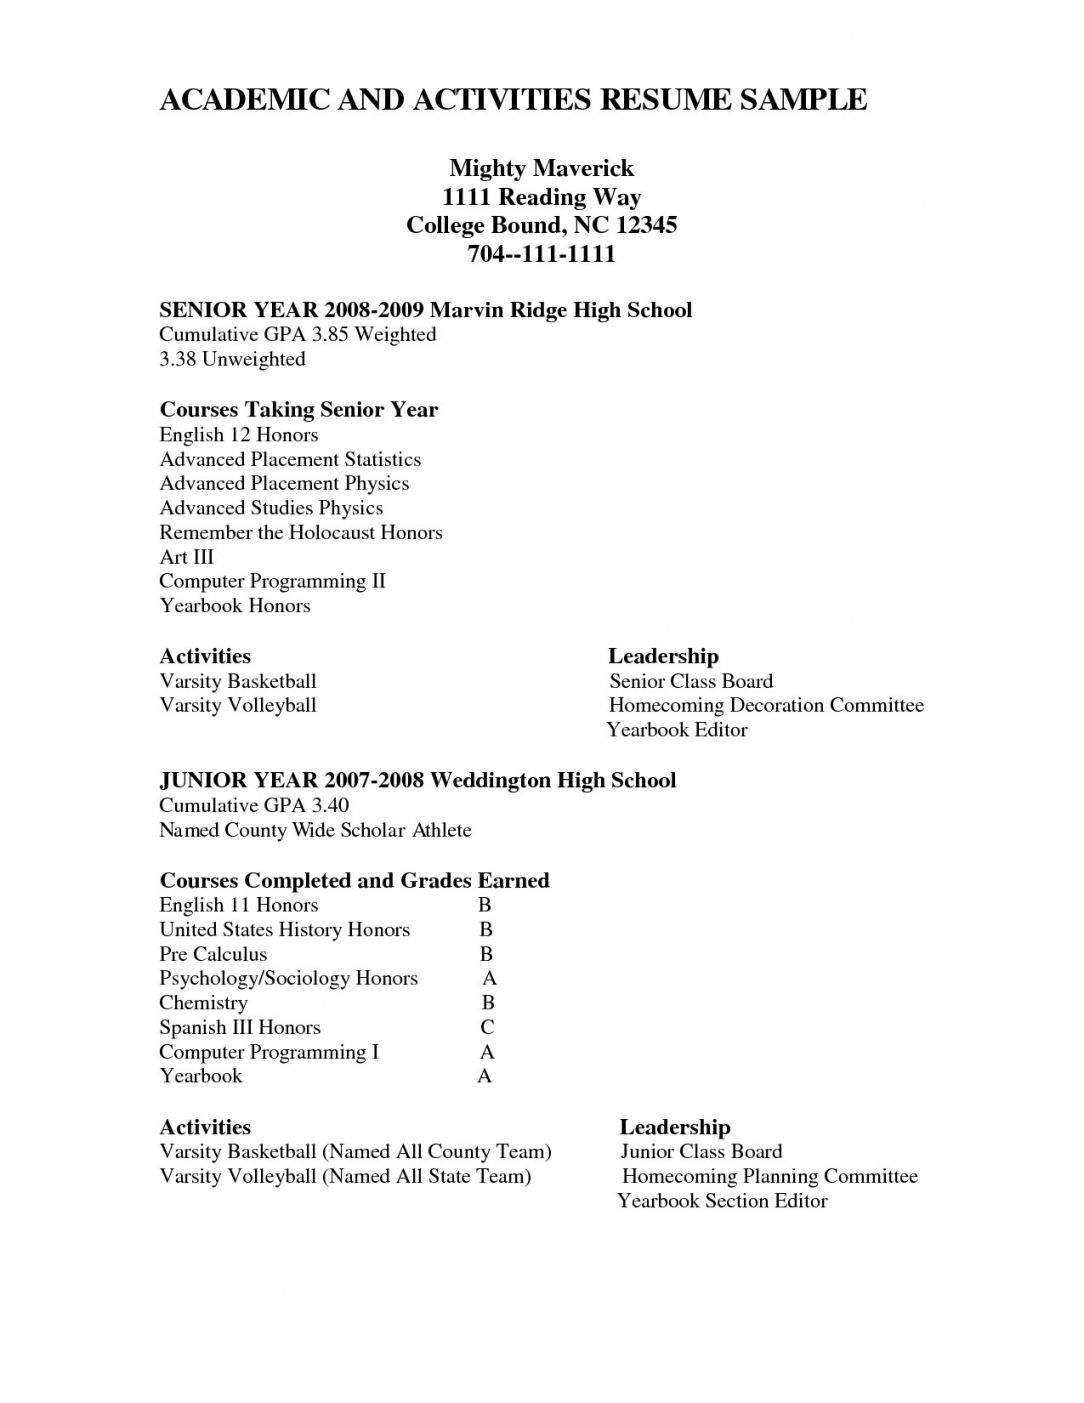 Resume writing lessons for high school students